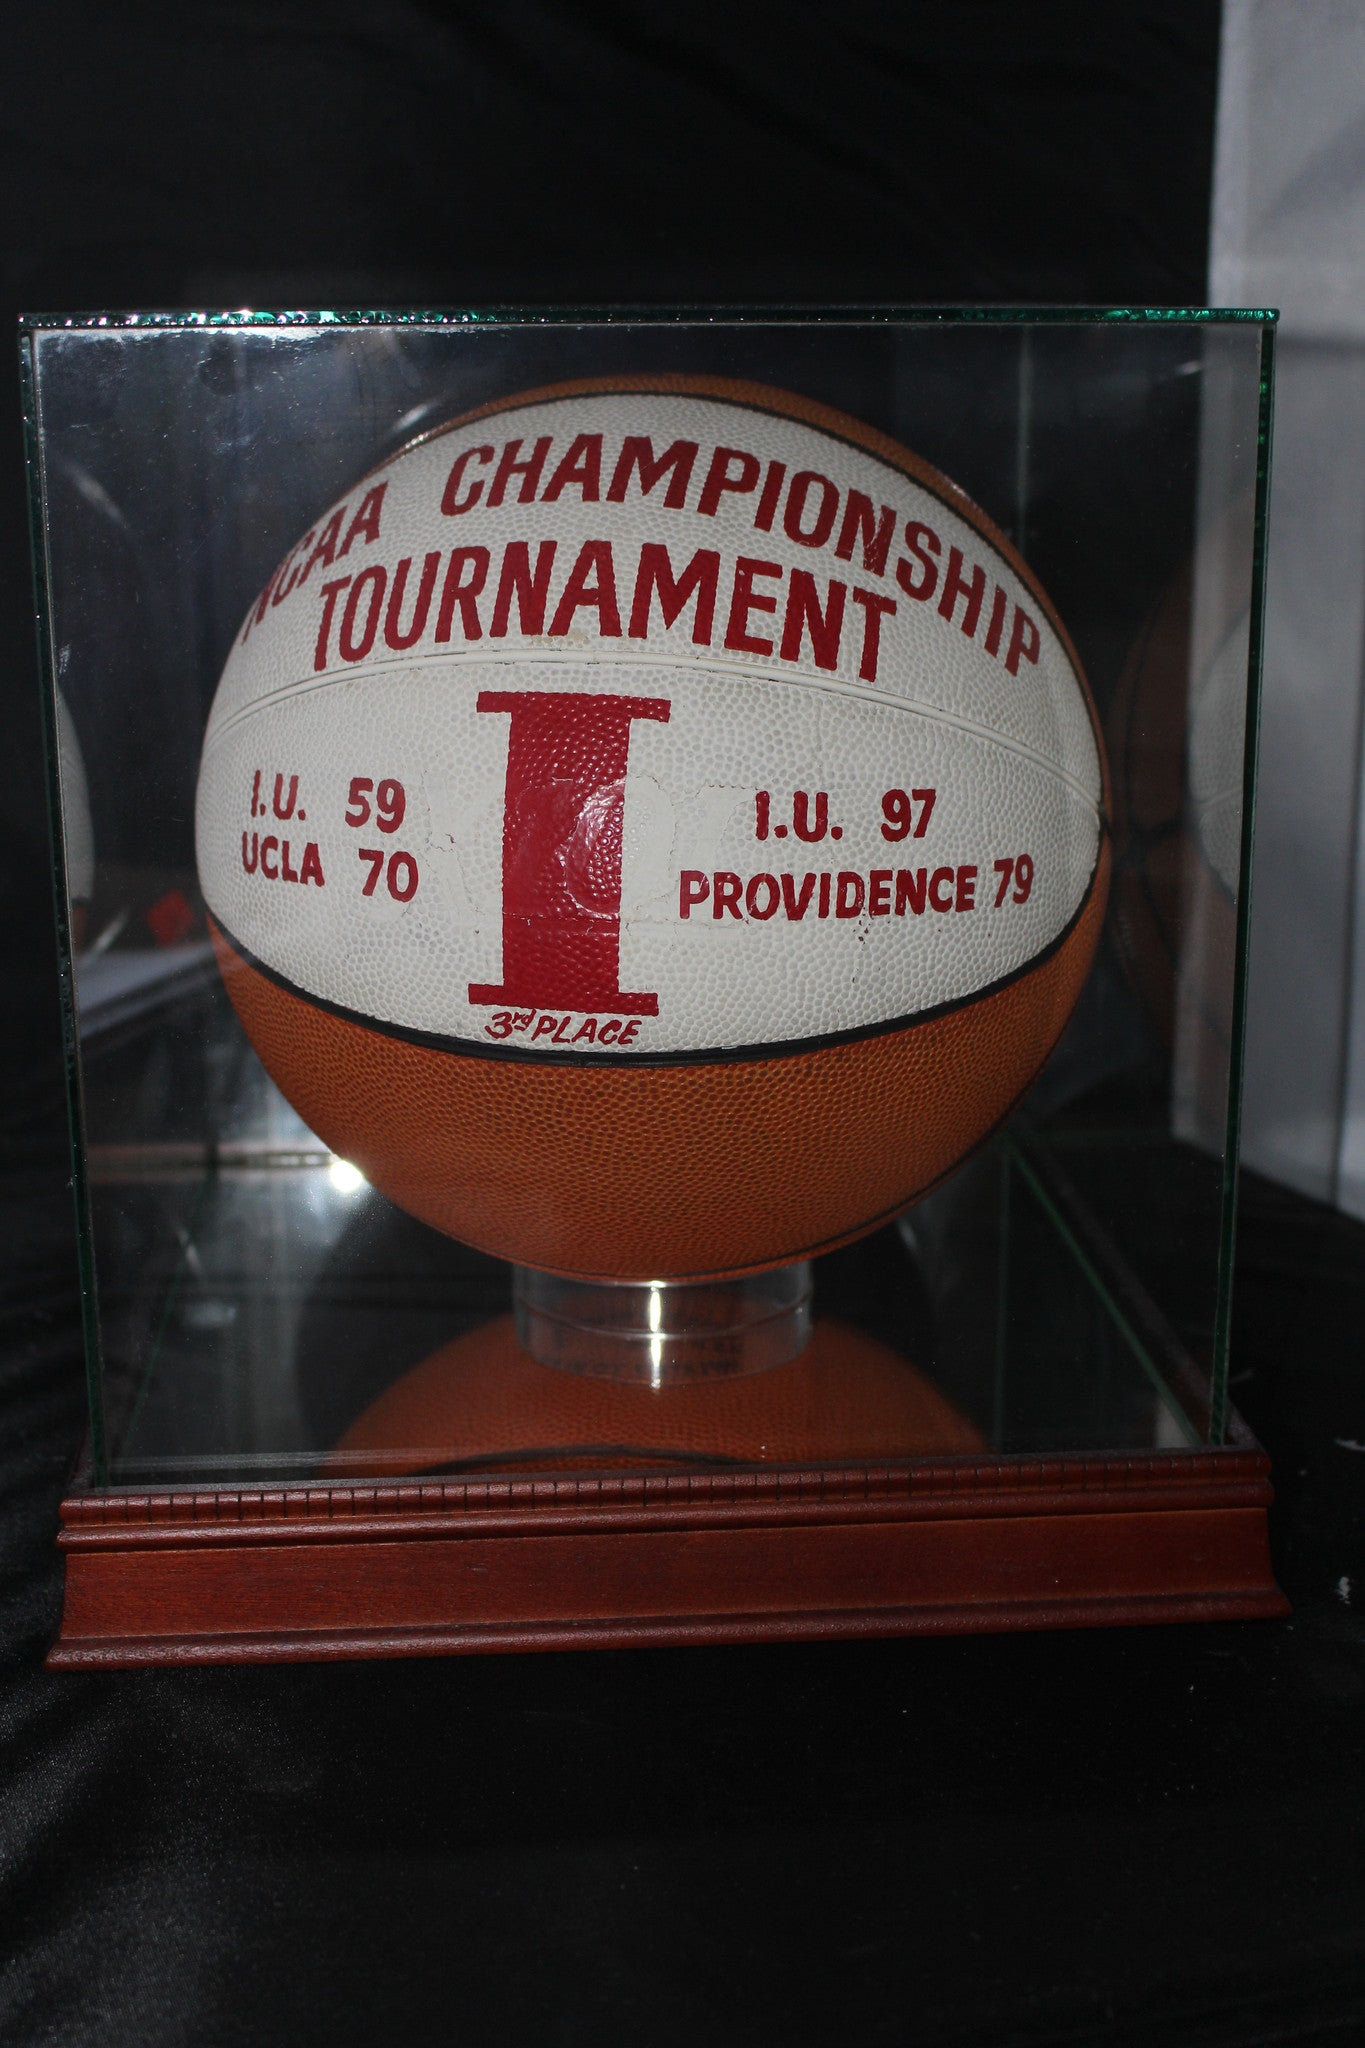 1973 NCAA 3rd Place Game Used Basketball, Indiana University - Vintage Indy Sports